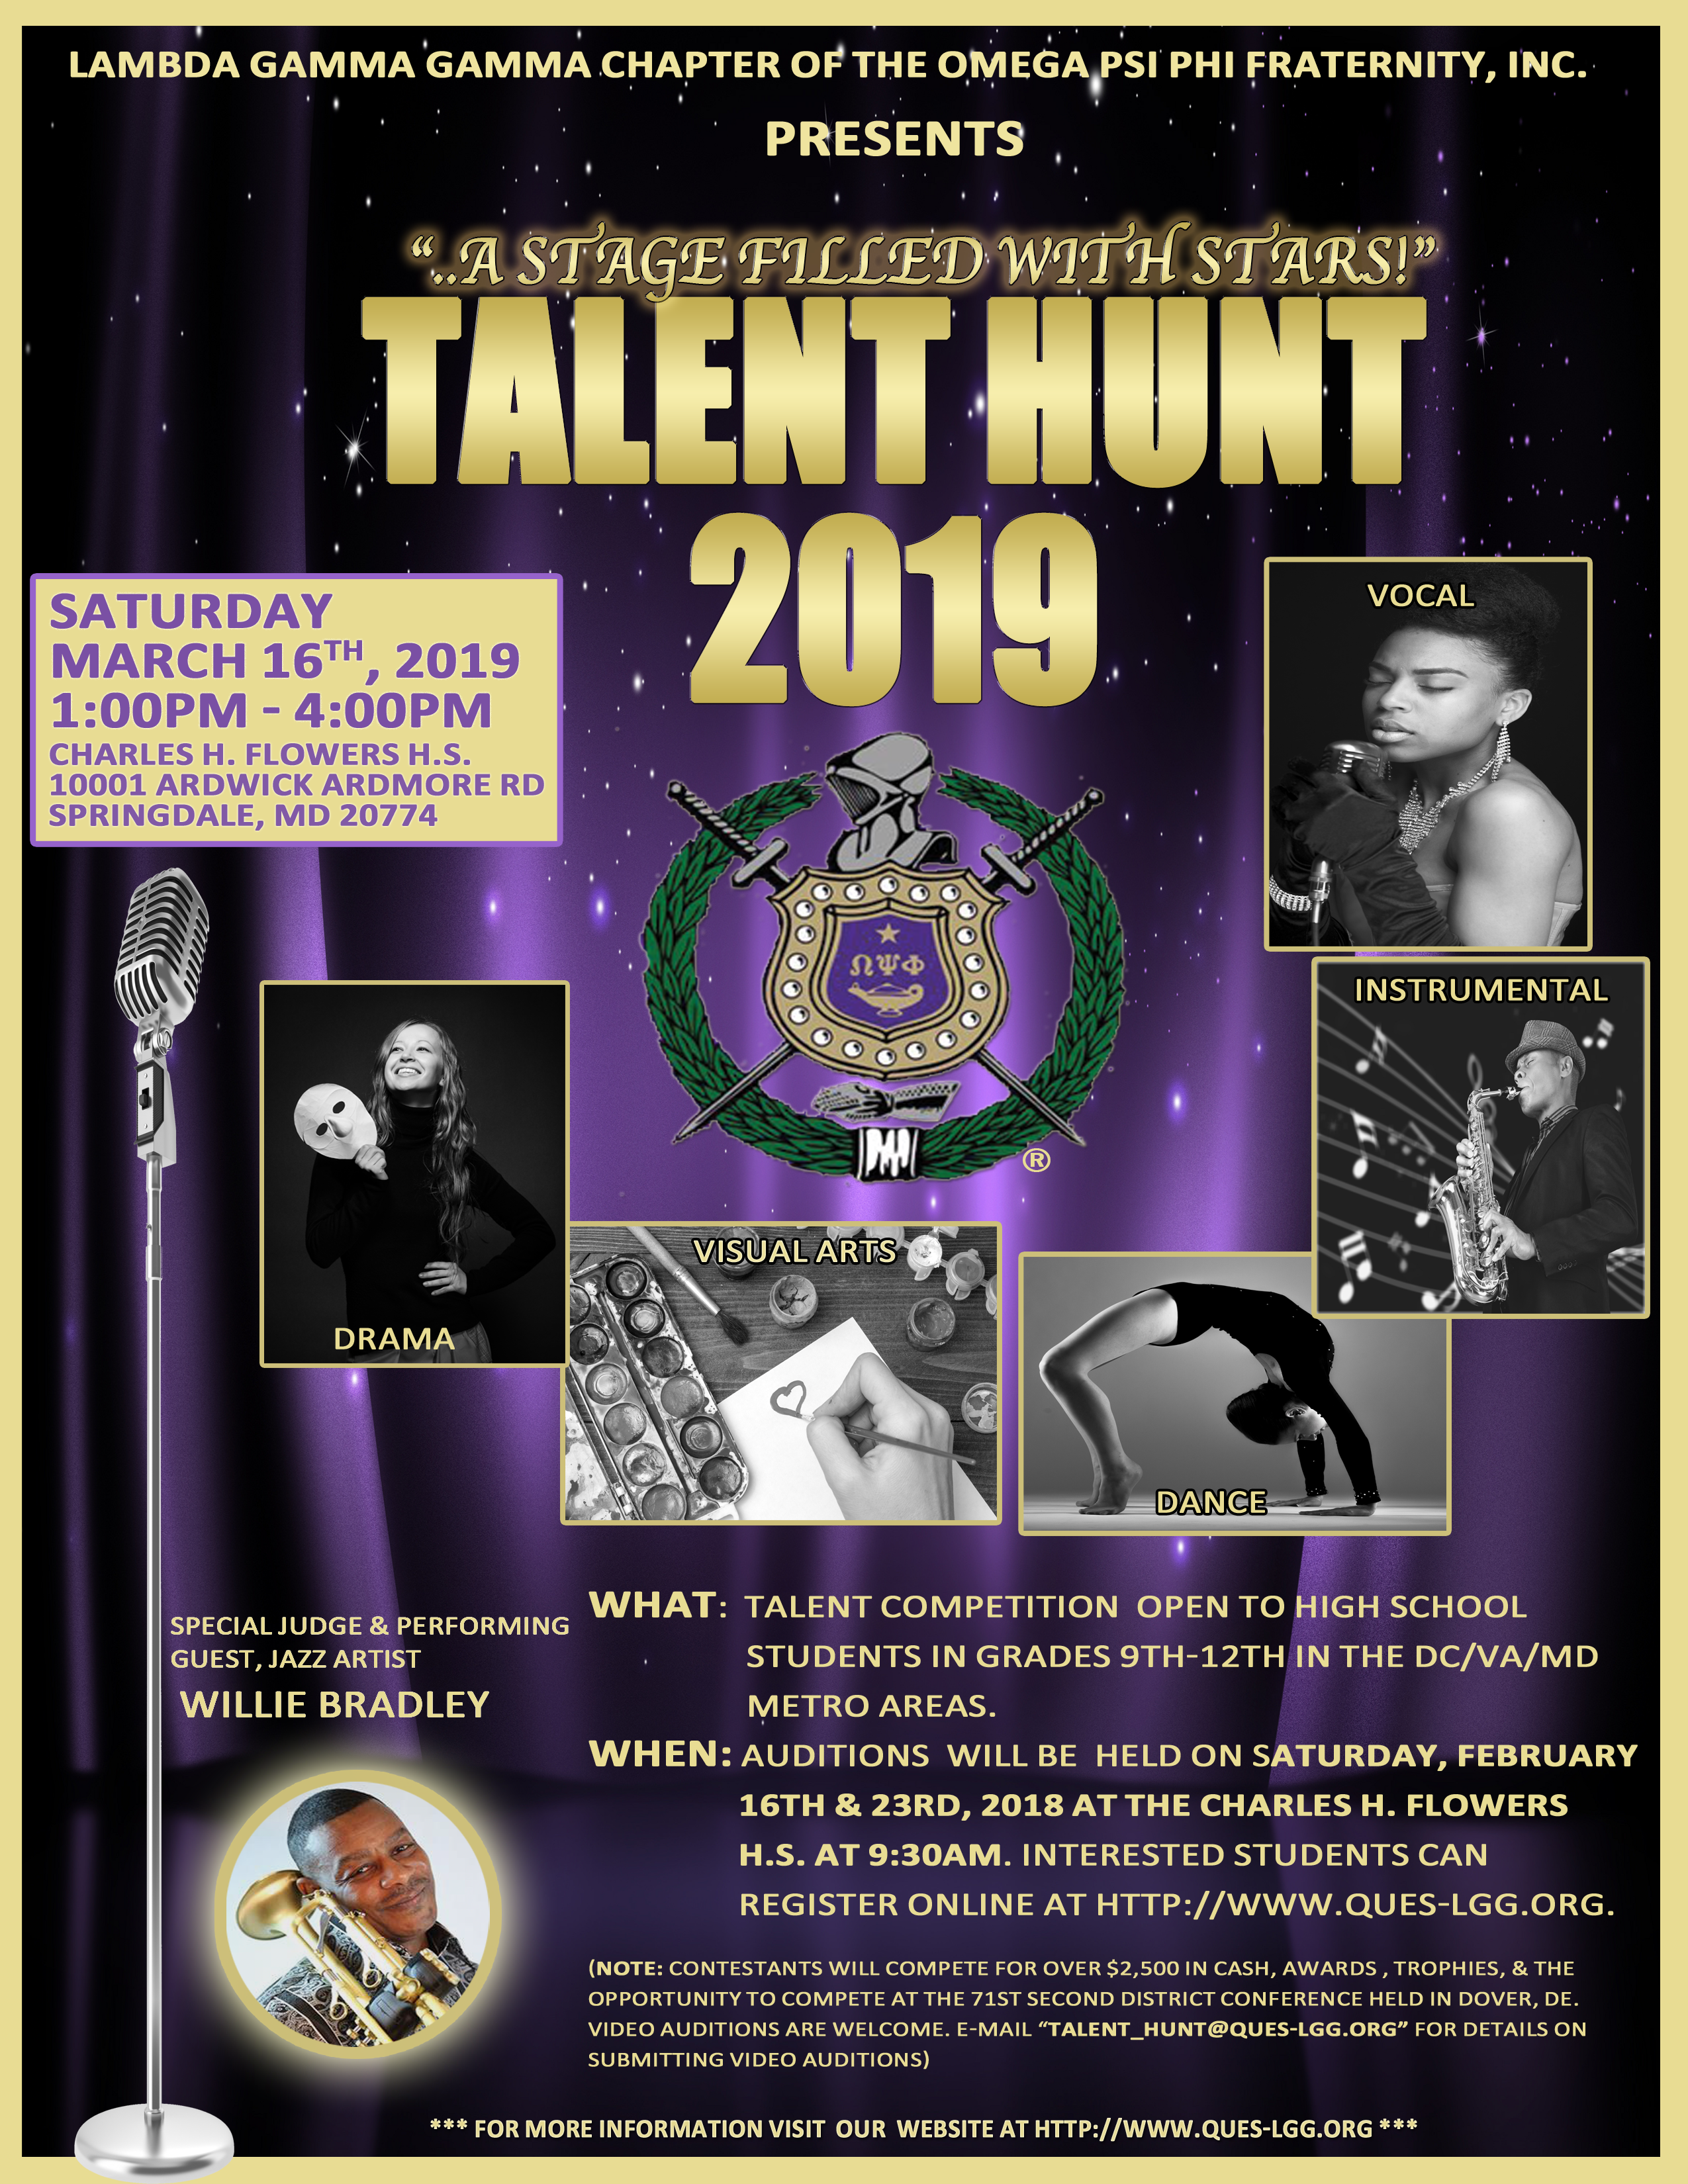 Talent Hunt 2019 Program